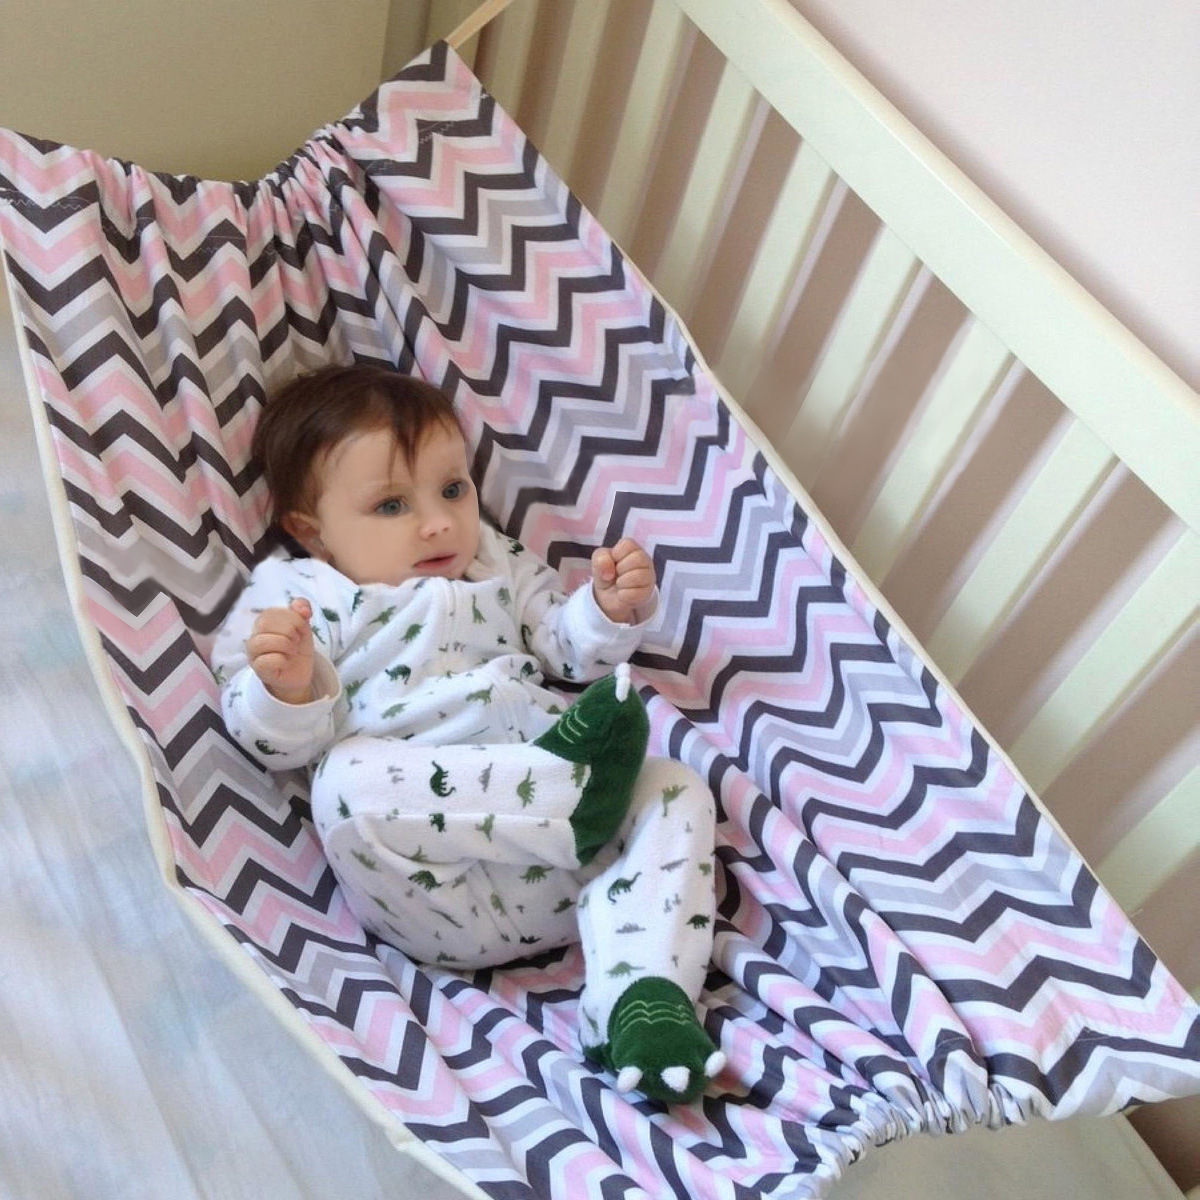 Independent 2018 Hot Baby Hammock European And American Family Portable Bed Kit Removable Fine Craftsmanship Mother & Kids